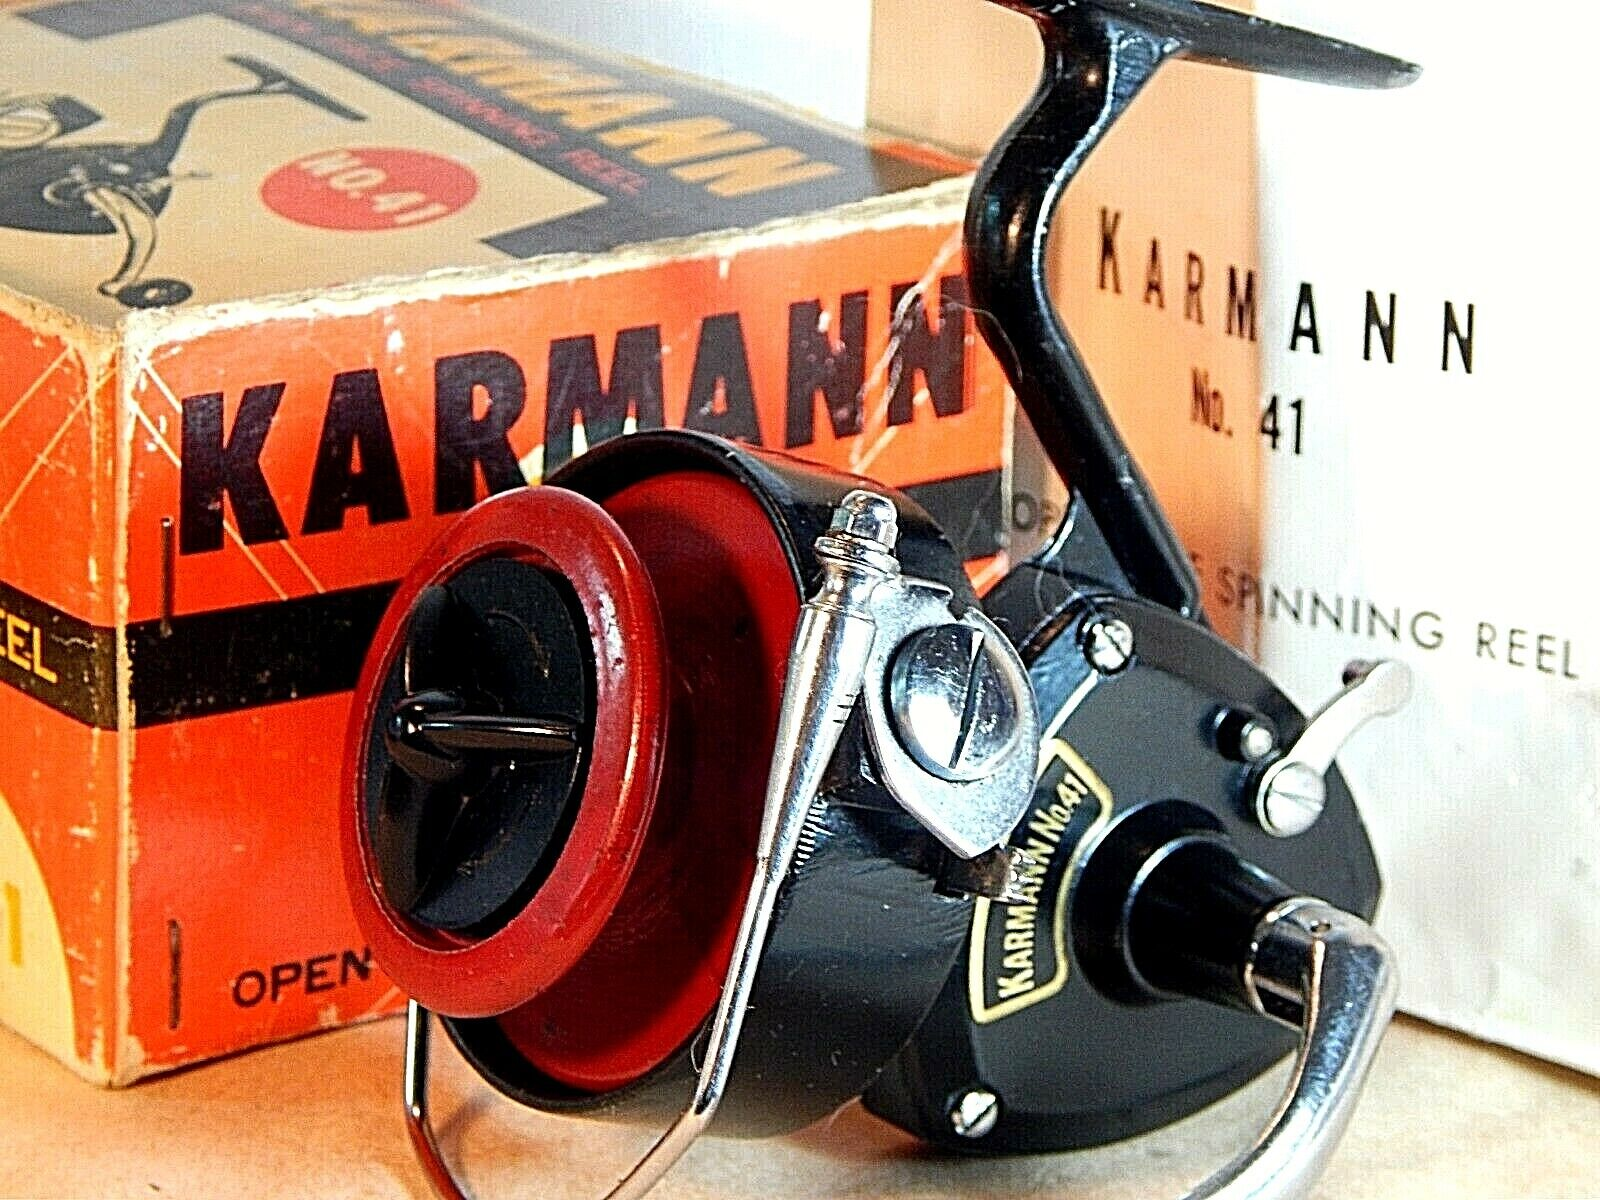 1968 Japanese Vintage Karmann No.41 spinning reel in original boxusedexcellent